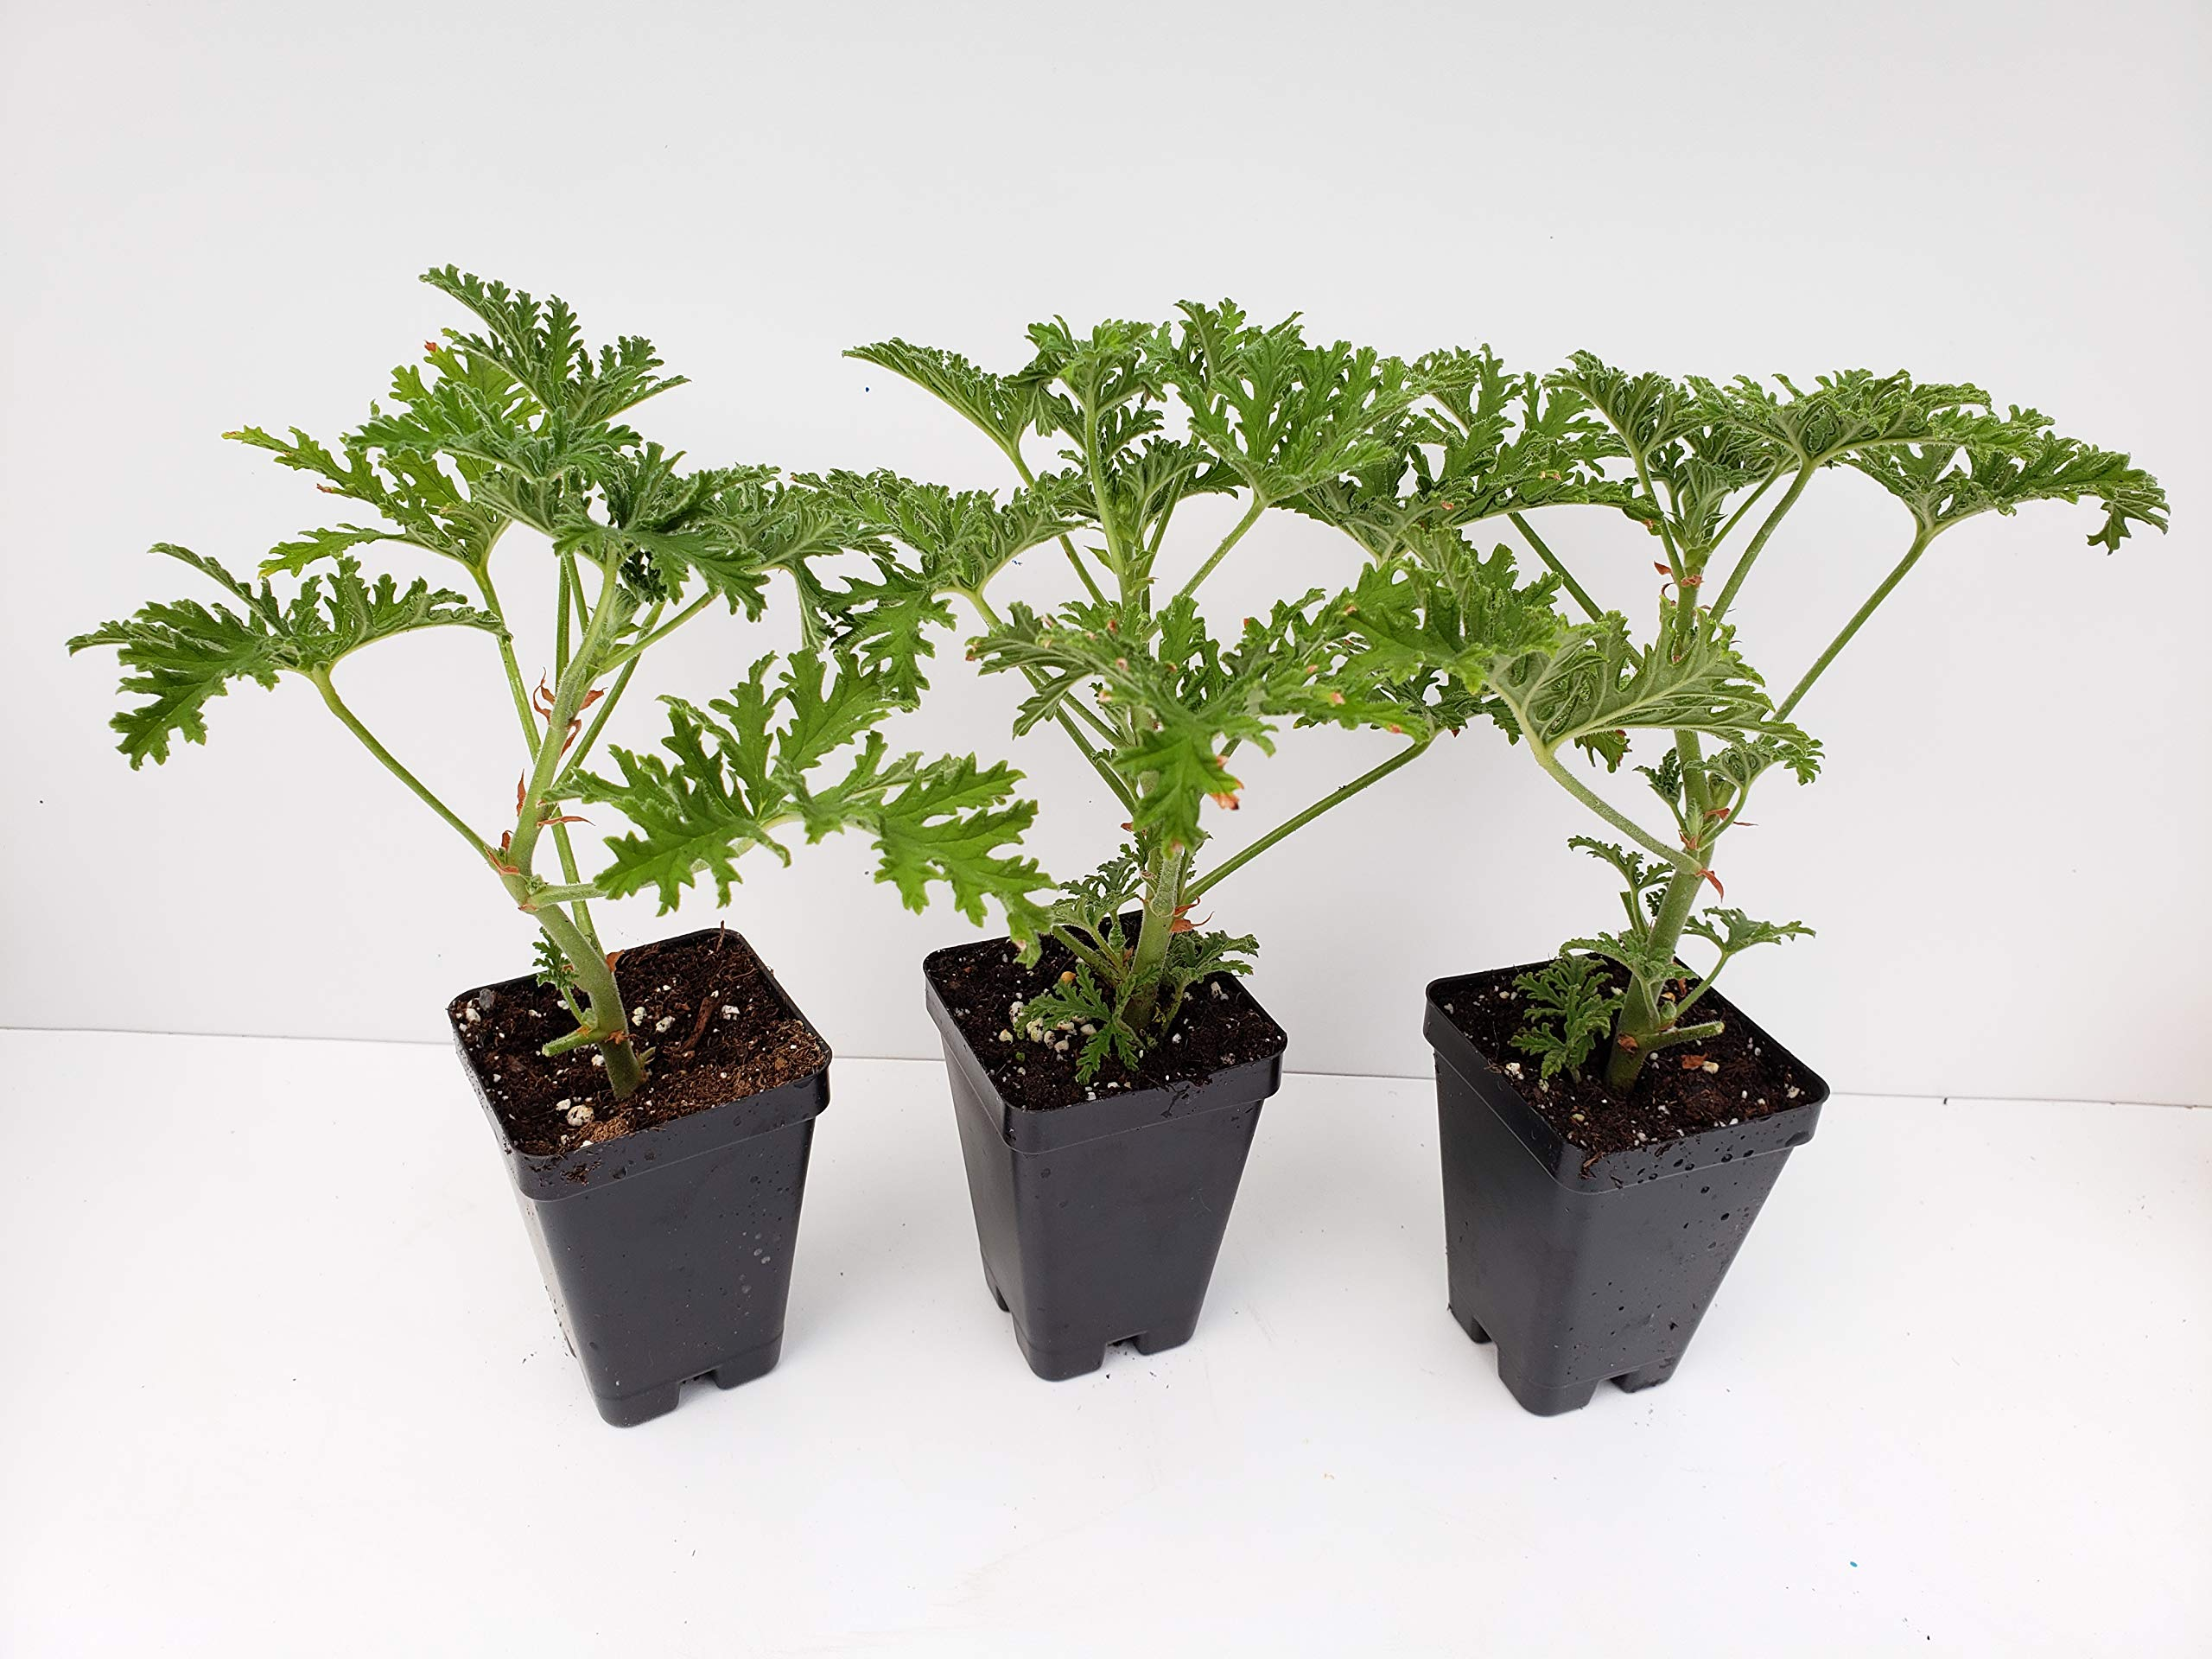 Live Citronella Starter Plants - 3 Pack of Citrosa Mosquito Plants - Scented Geranium